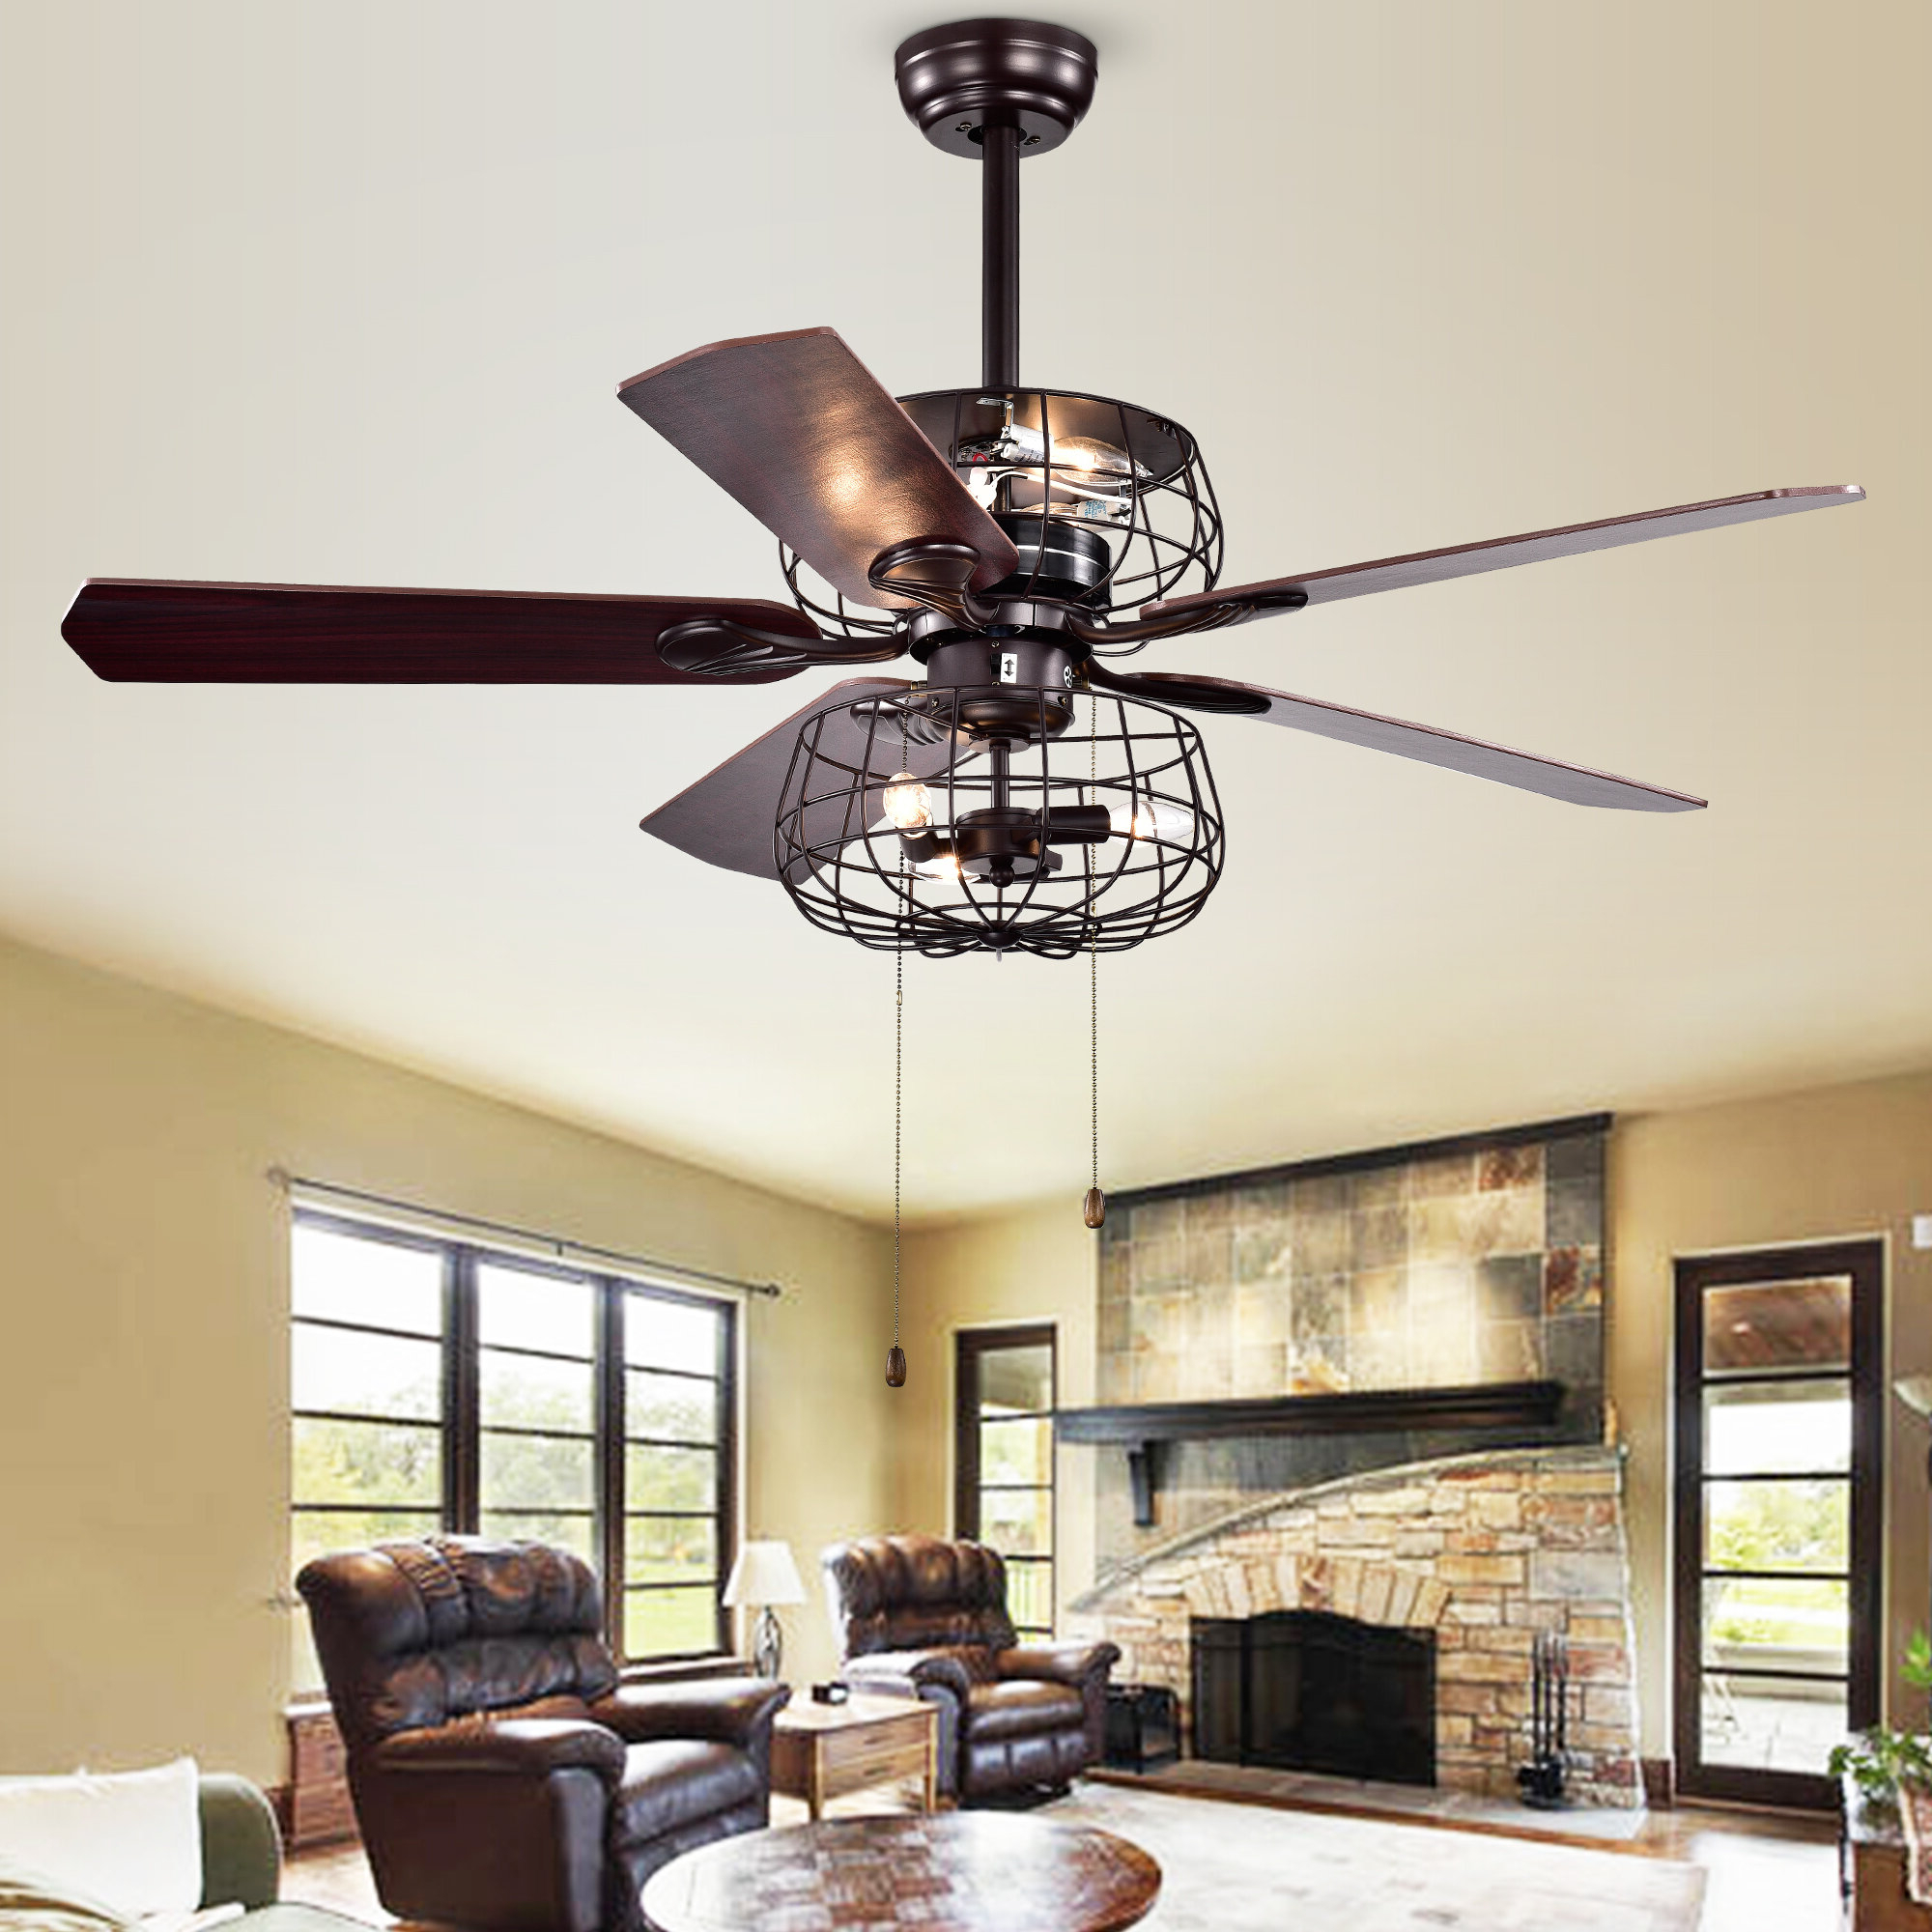 2019 Cranbrook 4 Blade Ceiling Fans With Regard To Kaiya 5 Blade Ceiling Fan, Light Kit Included (View 1 of 20)